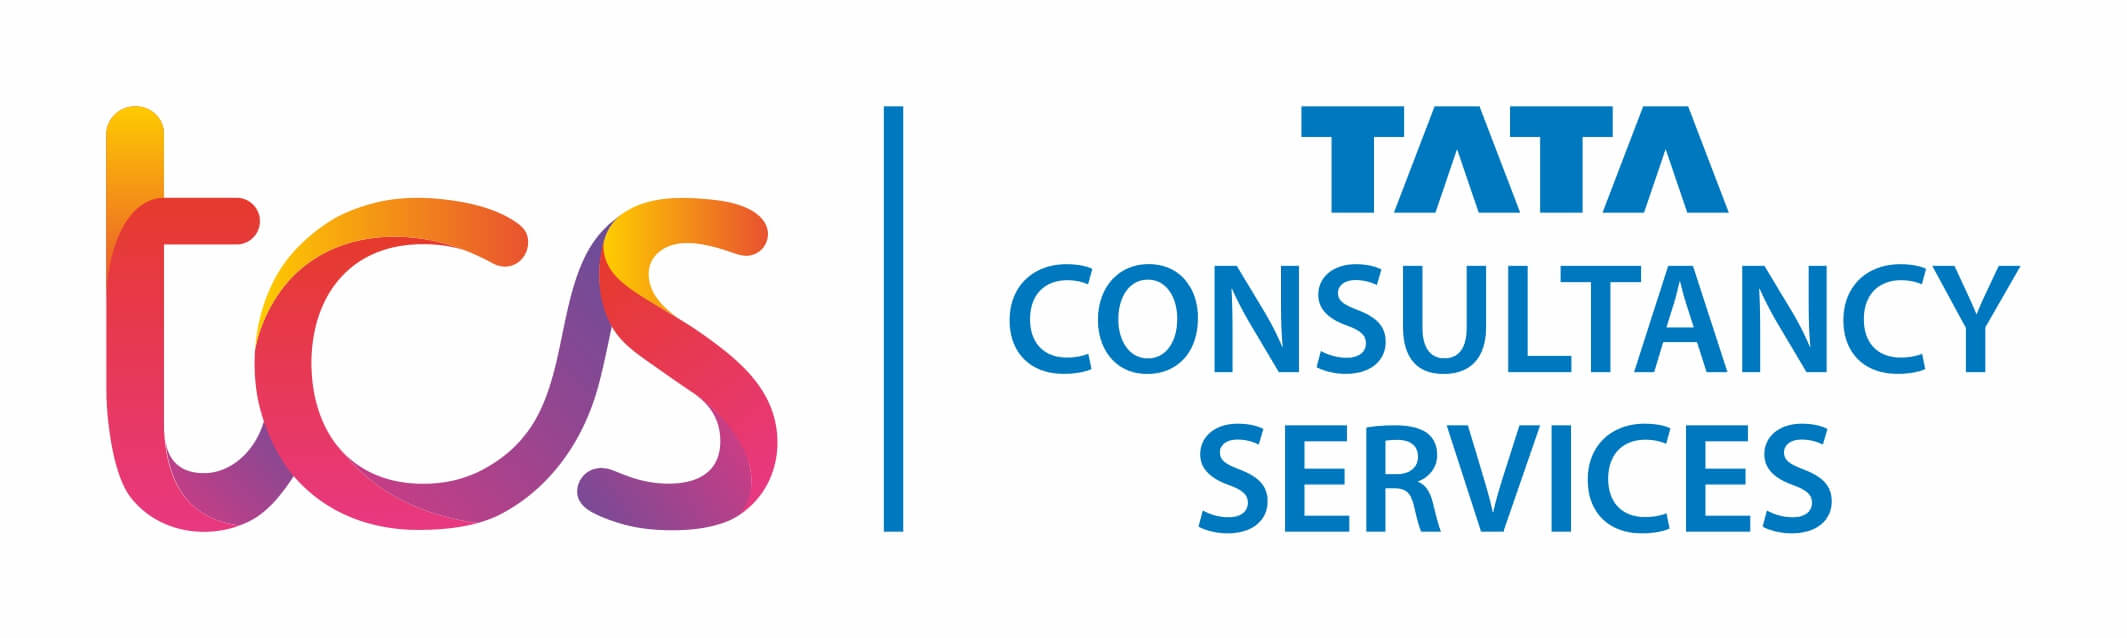 Final identity for tcs colour